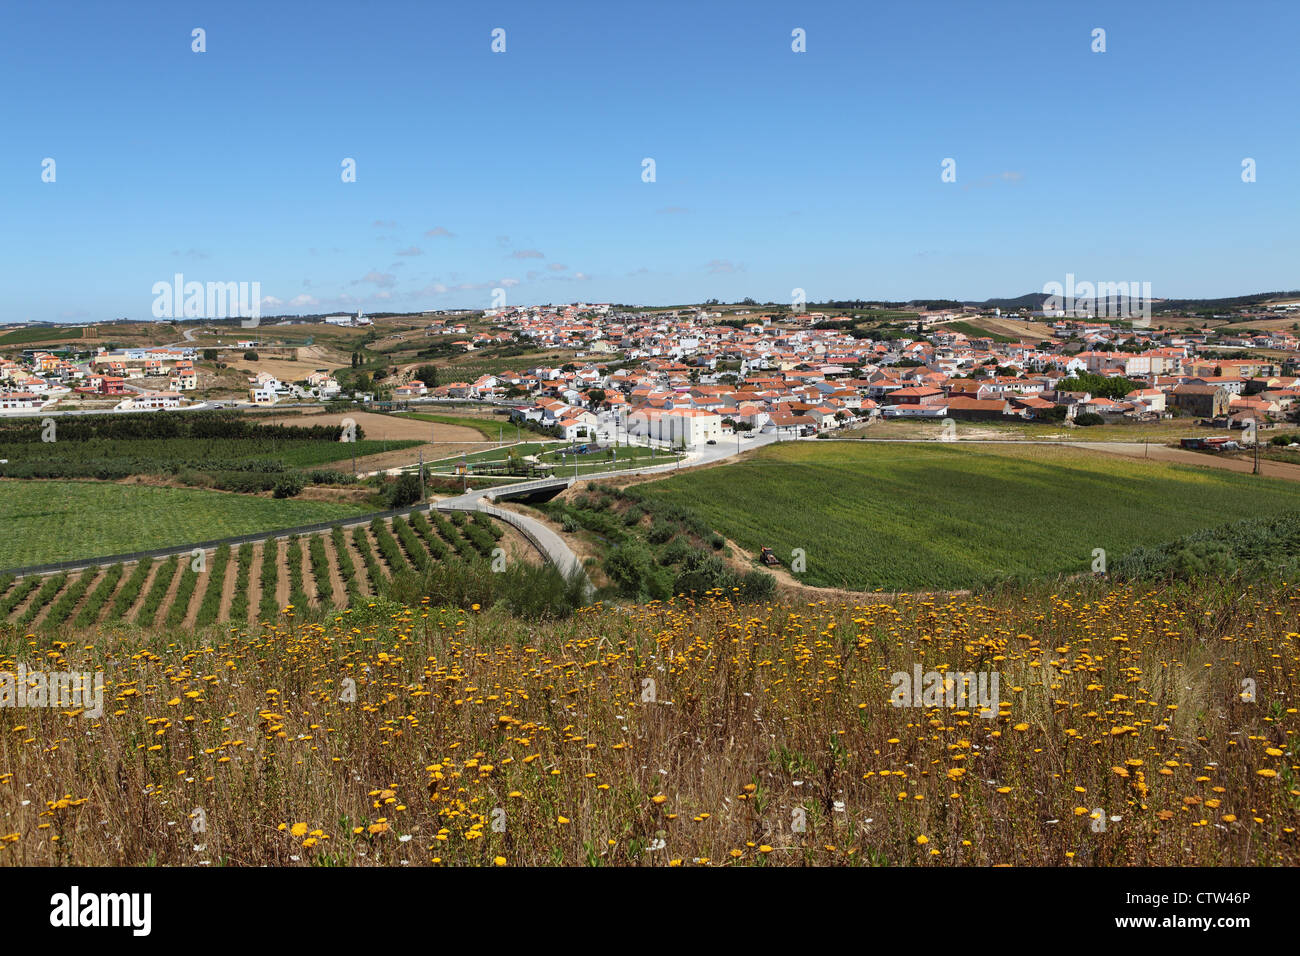 Countryside by the Lines of Torres Vedras around Lisbon, Portugal. - Stock Image